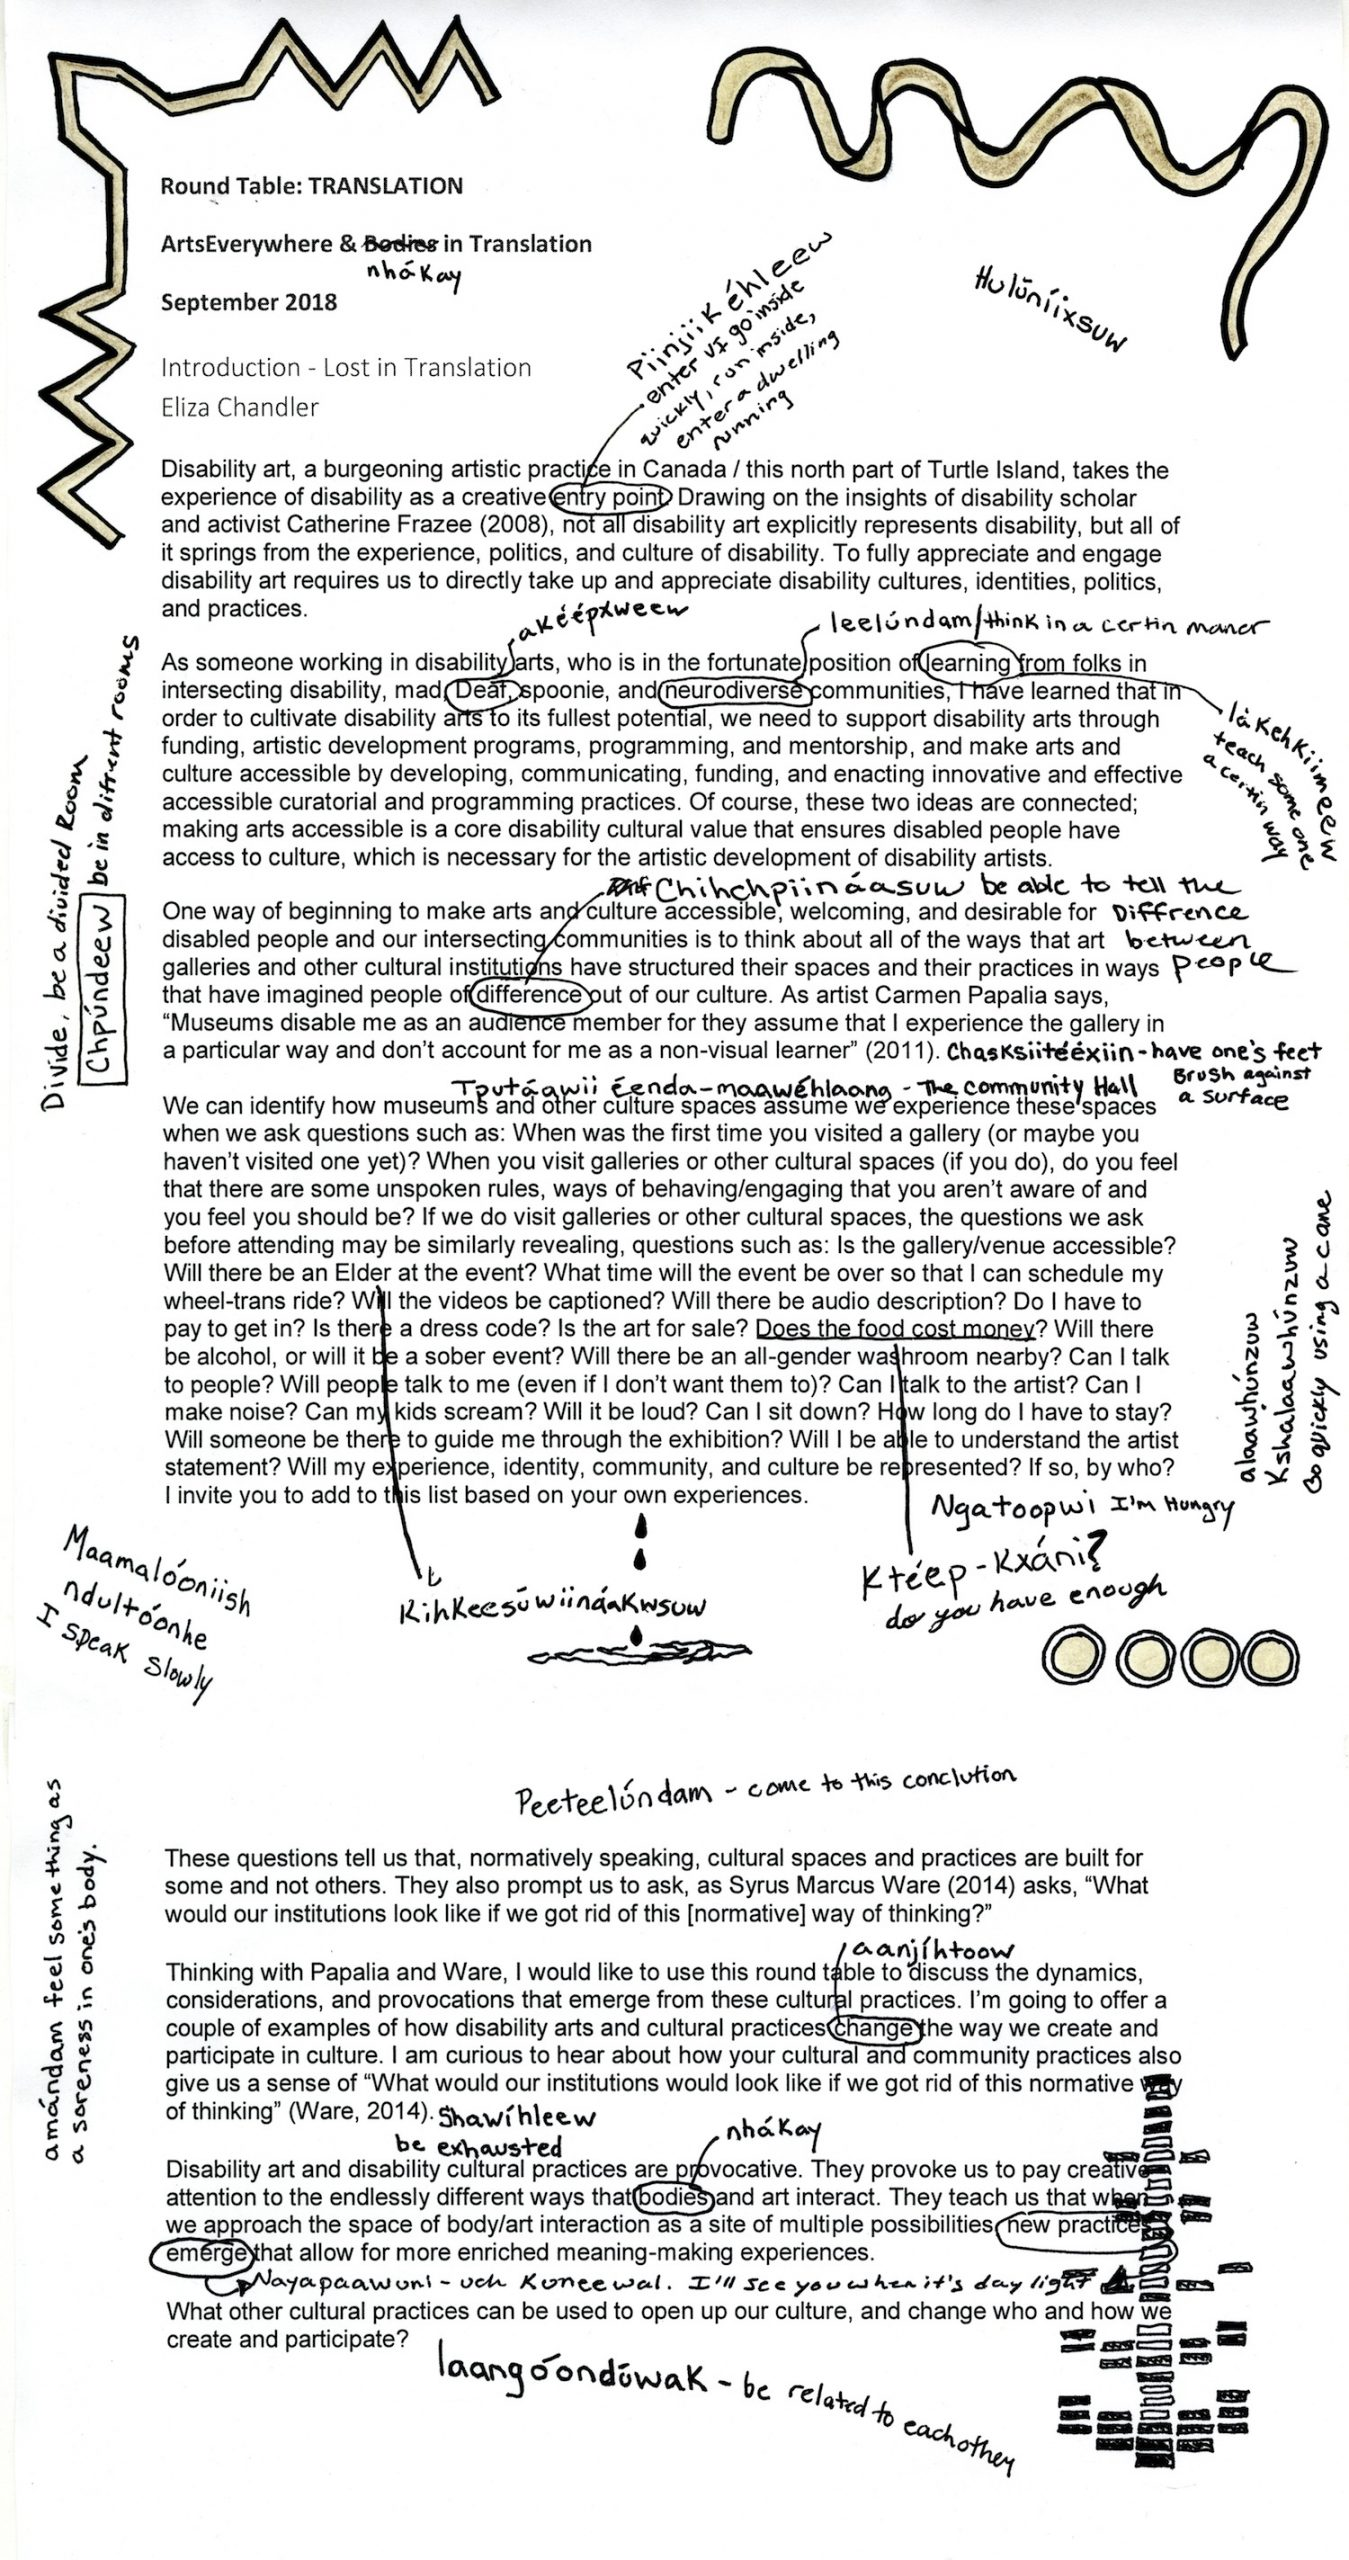 Vanessa Dion Fletcher's annotated vresion of Eliza Chandler's introduction